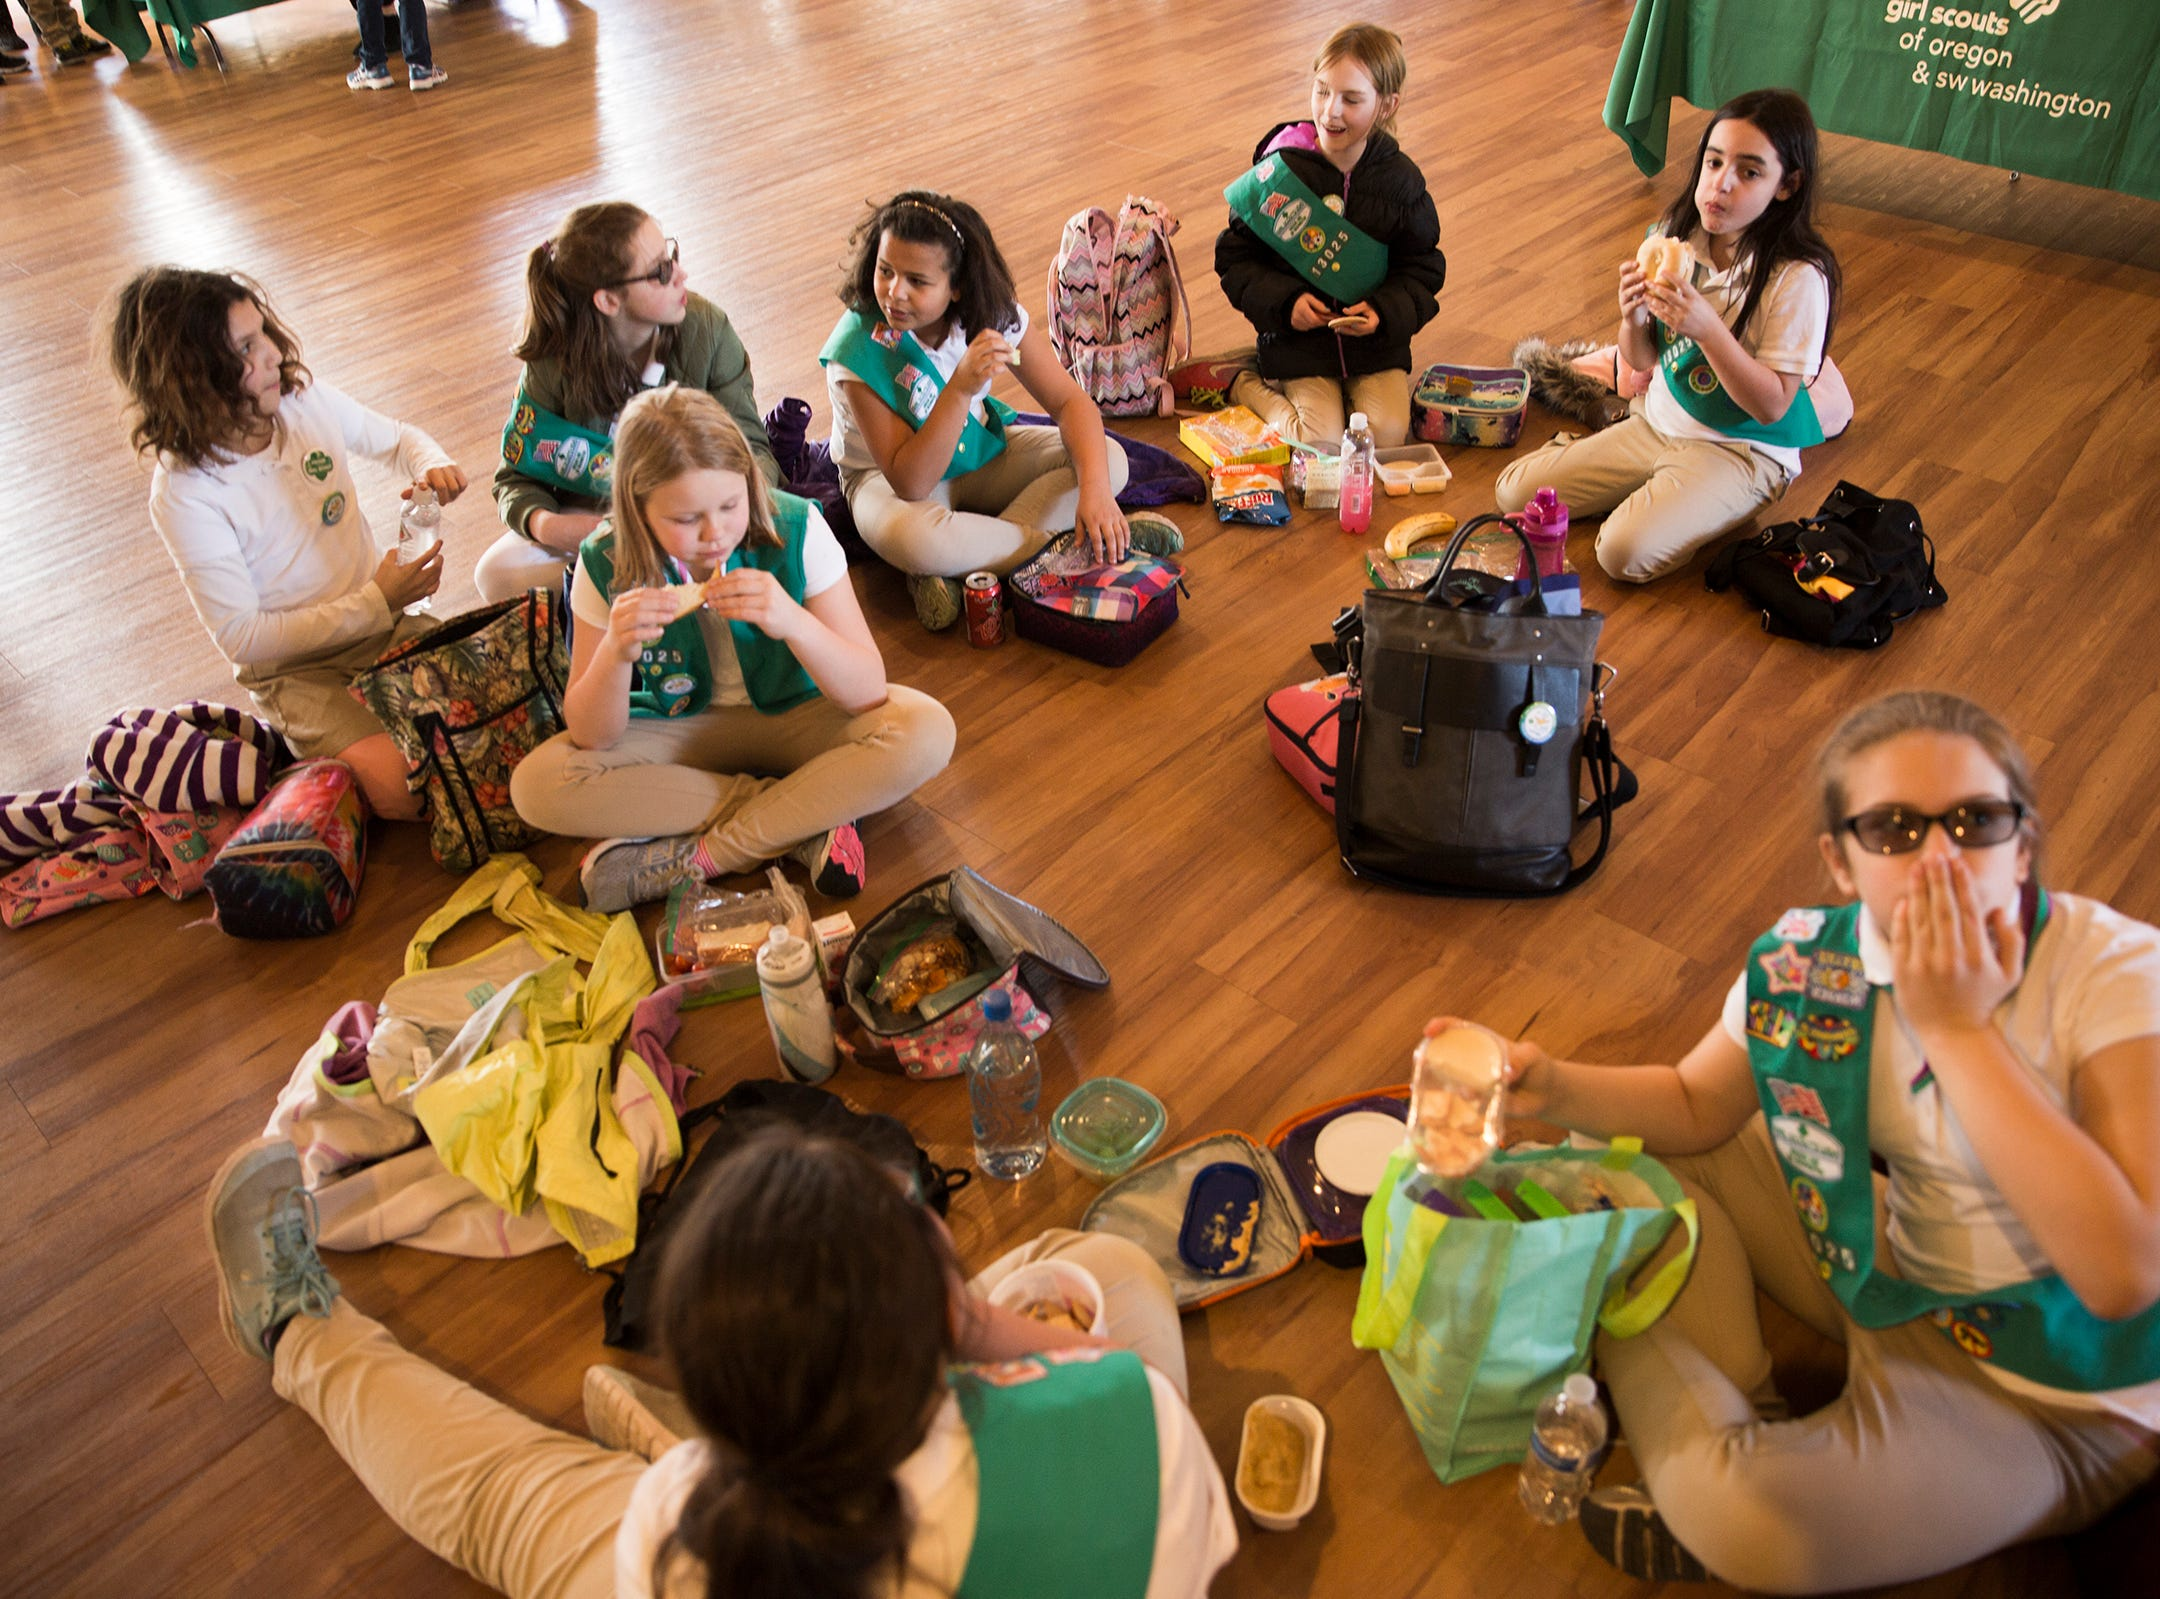 Girl Scouts from Eugene eat lunch during Girl Scout Leadership Day at the Willamette Heritage Center in Salem March 12, 2019.